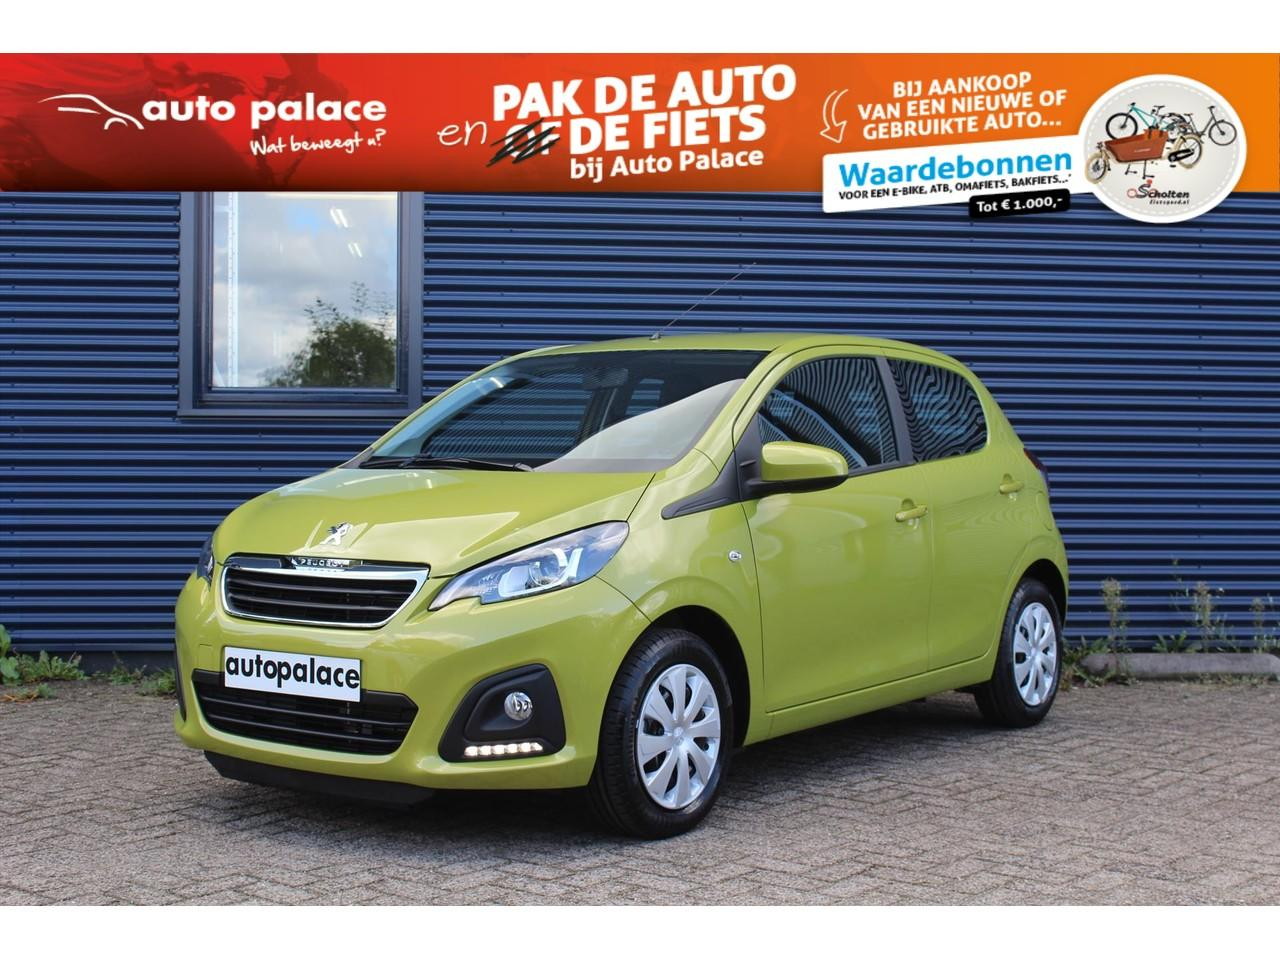 Peugeot 108 1.0 72pk 5d active netto deal korting! camera l dab+